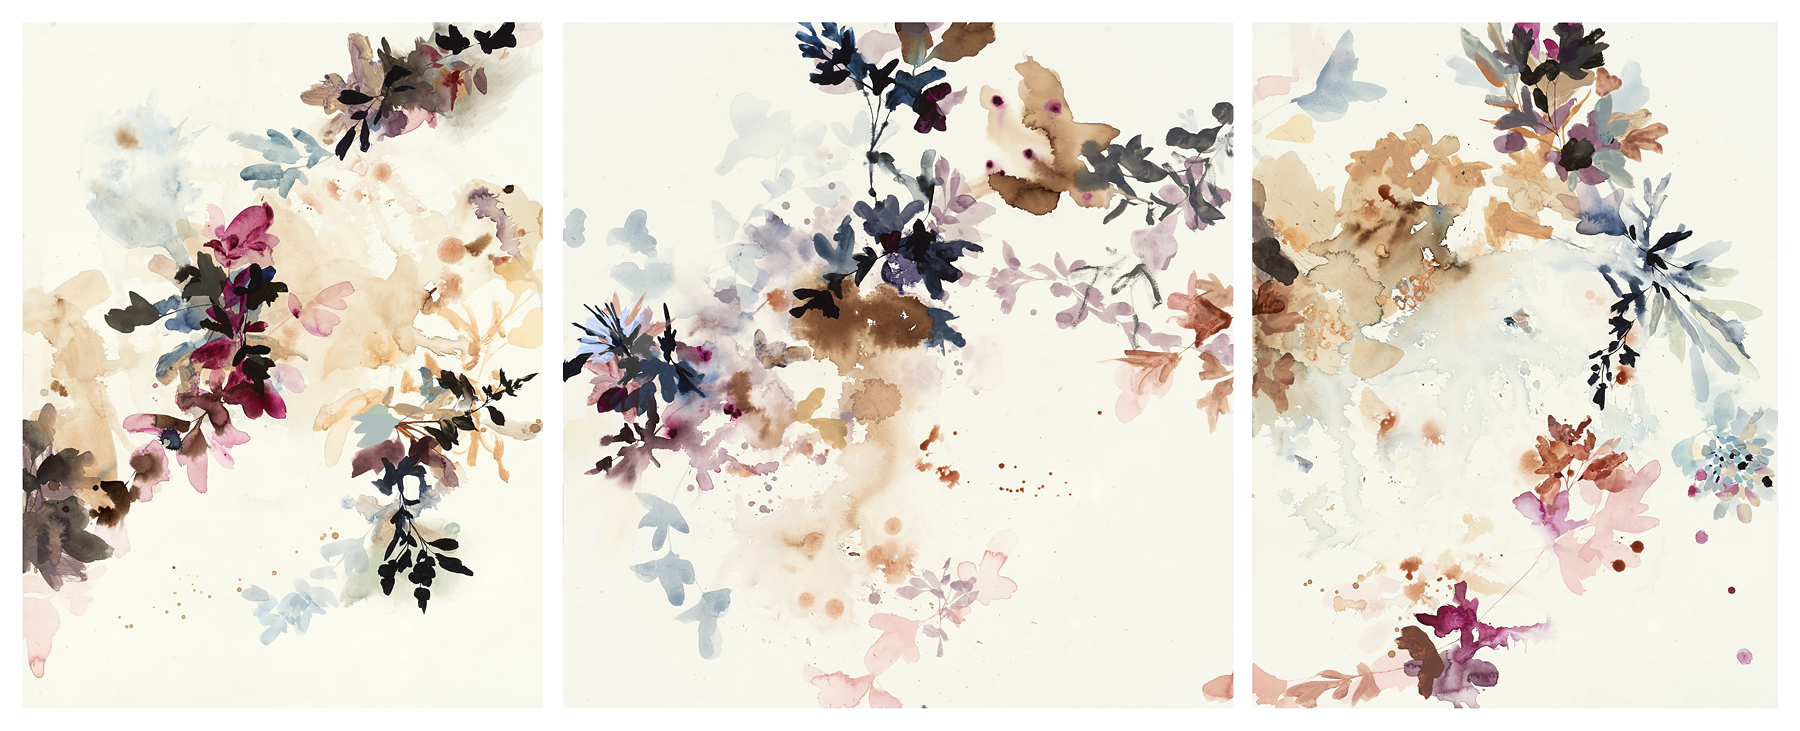 Wildflower Study - deep purple, 2019, mixed media on paper, 29 x 72.5""